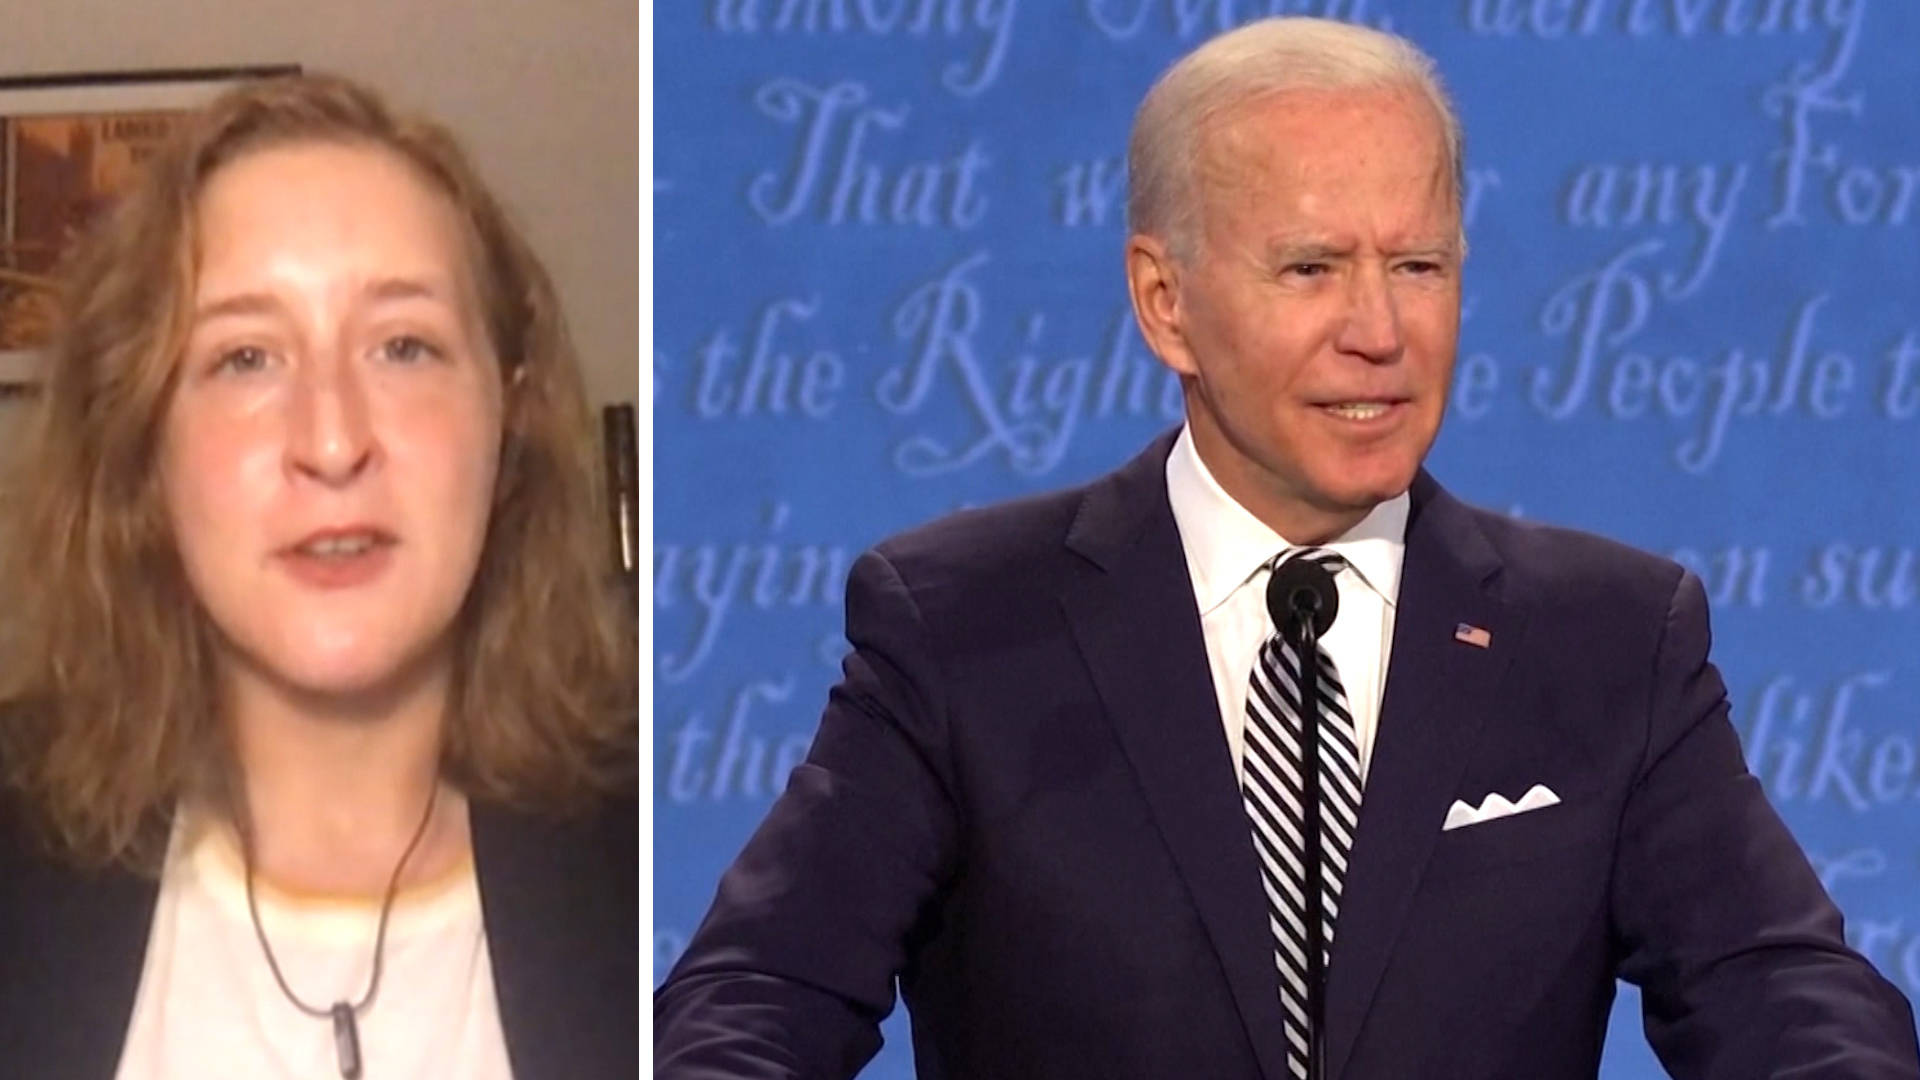 Kate Aronoff: The Climate Crisis Can't Take 4 More Years of Trump. We Must Push Biden from the Left